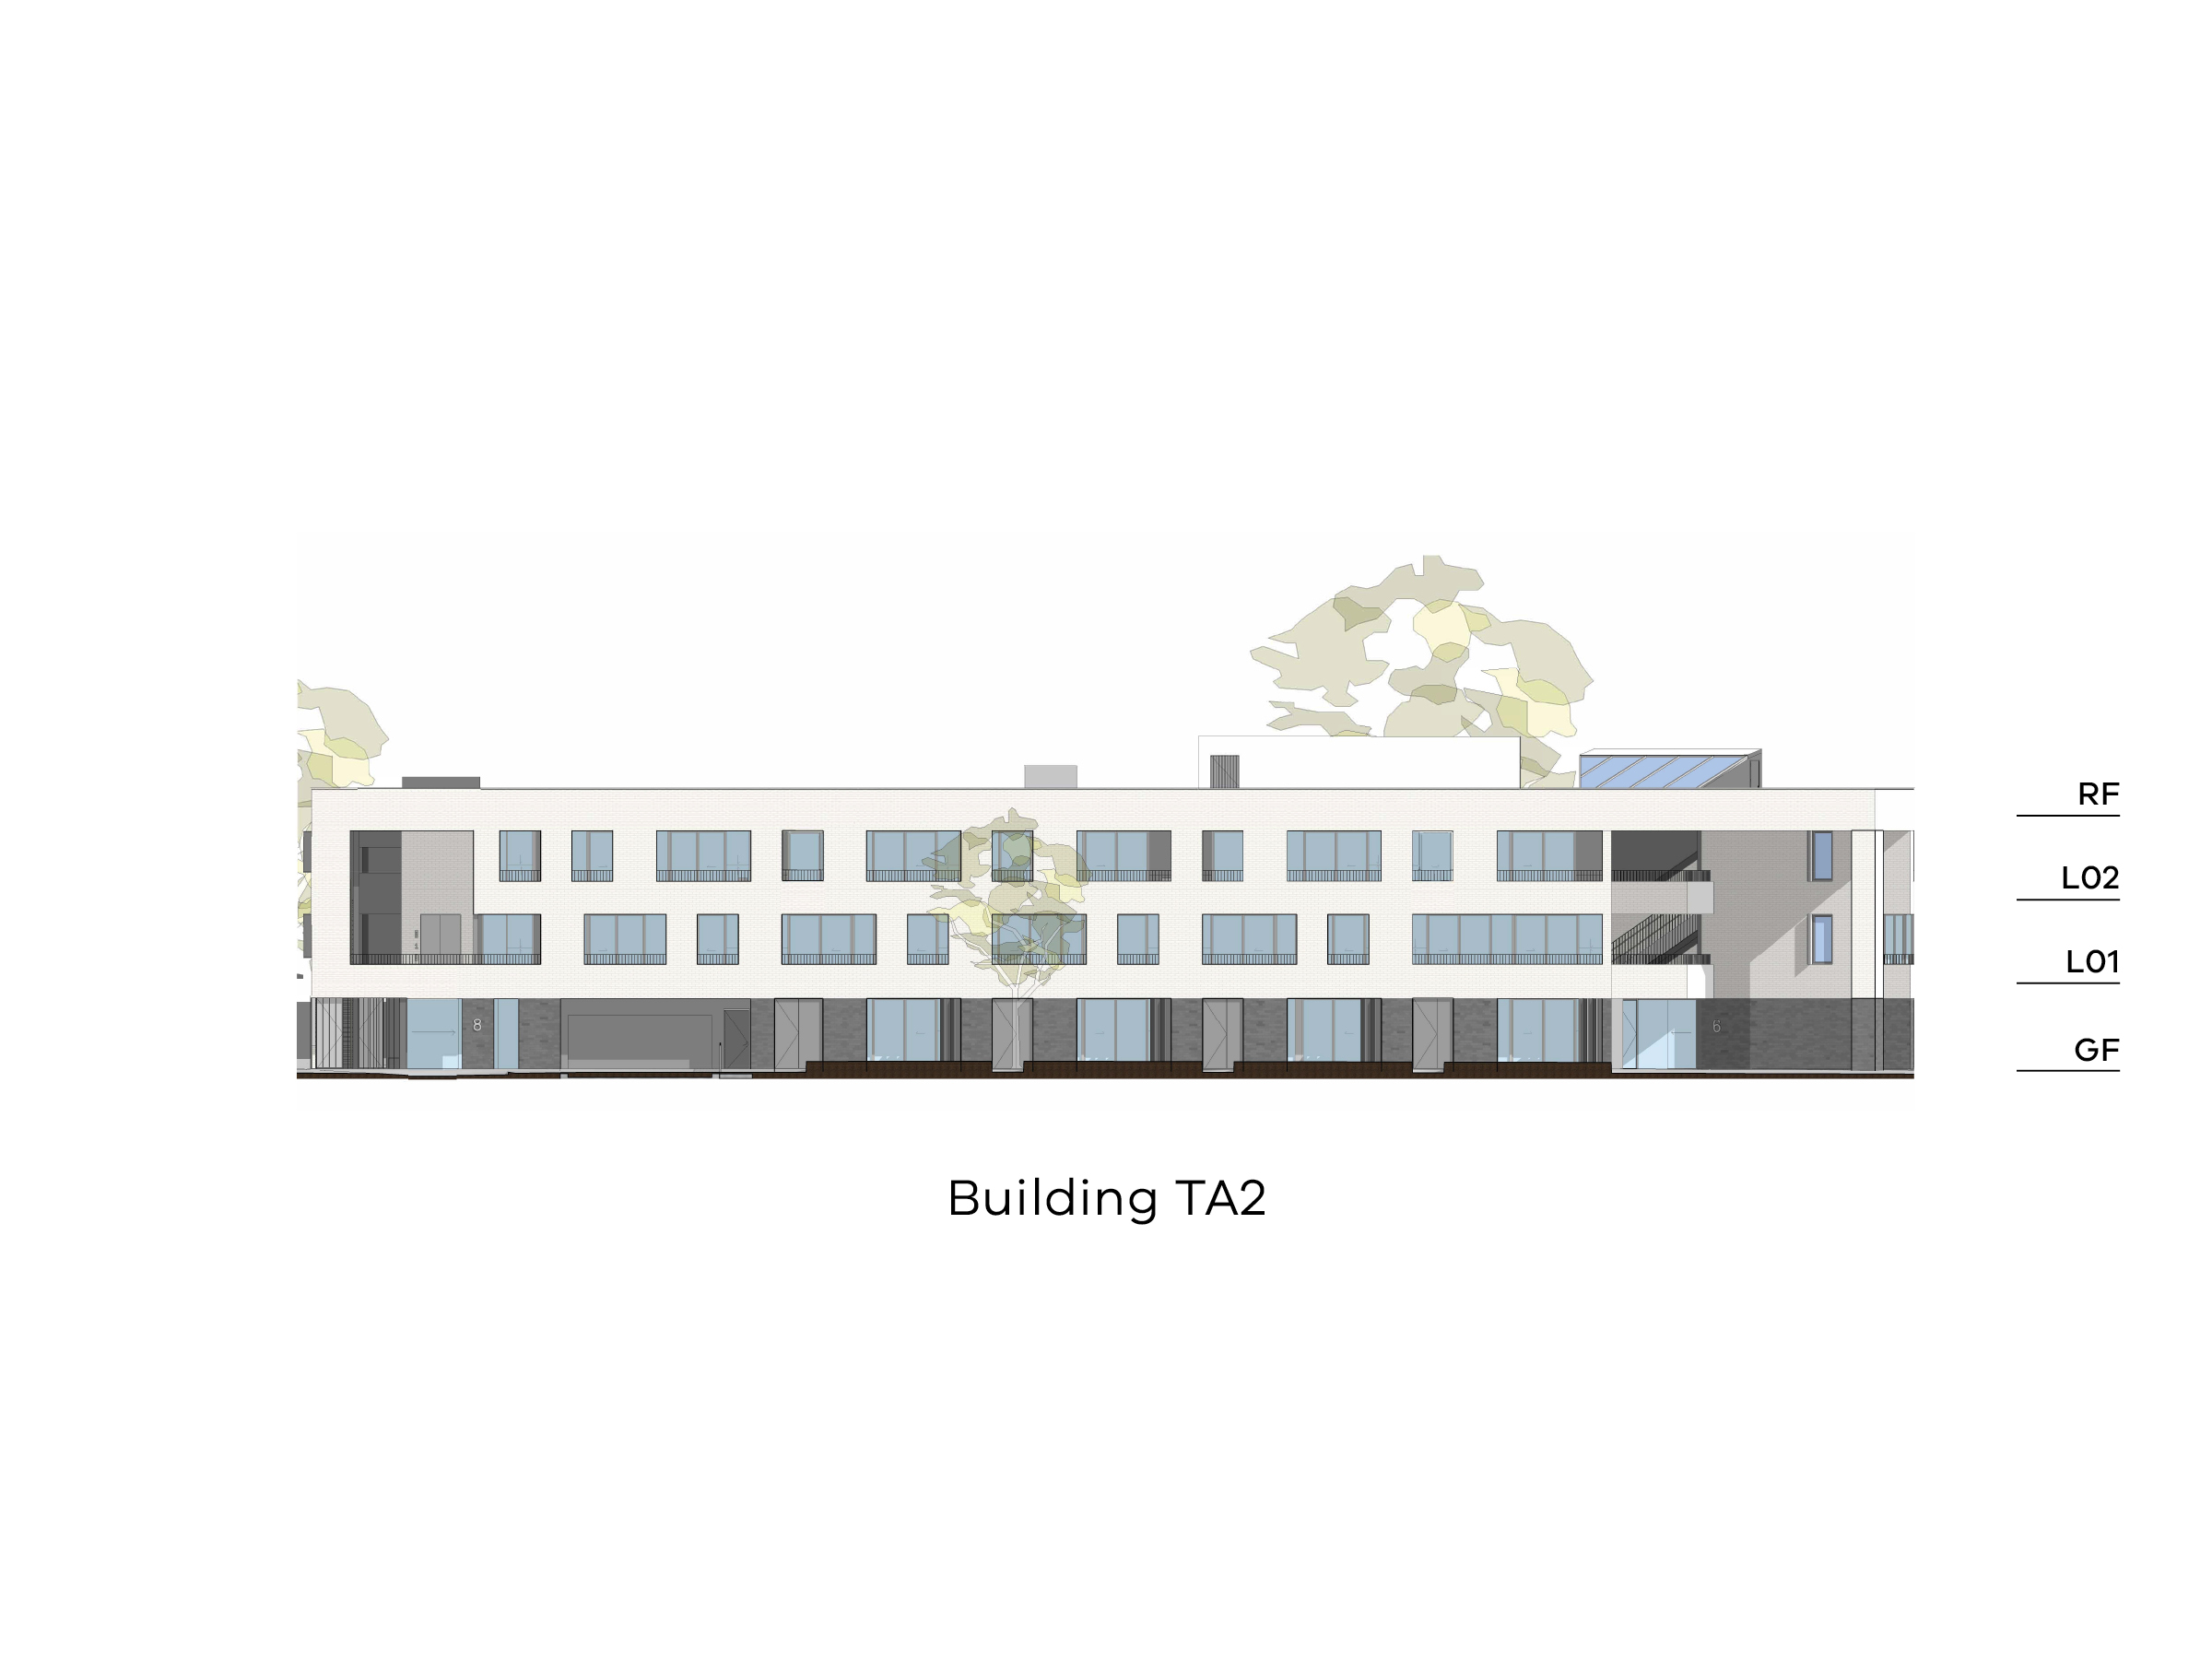 Diagram showing the height of the northern part of building TA2 as seen from Tarakan Street. Building TA2 has a ground floor, level 1-2 and a flat roof.